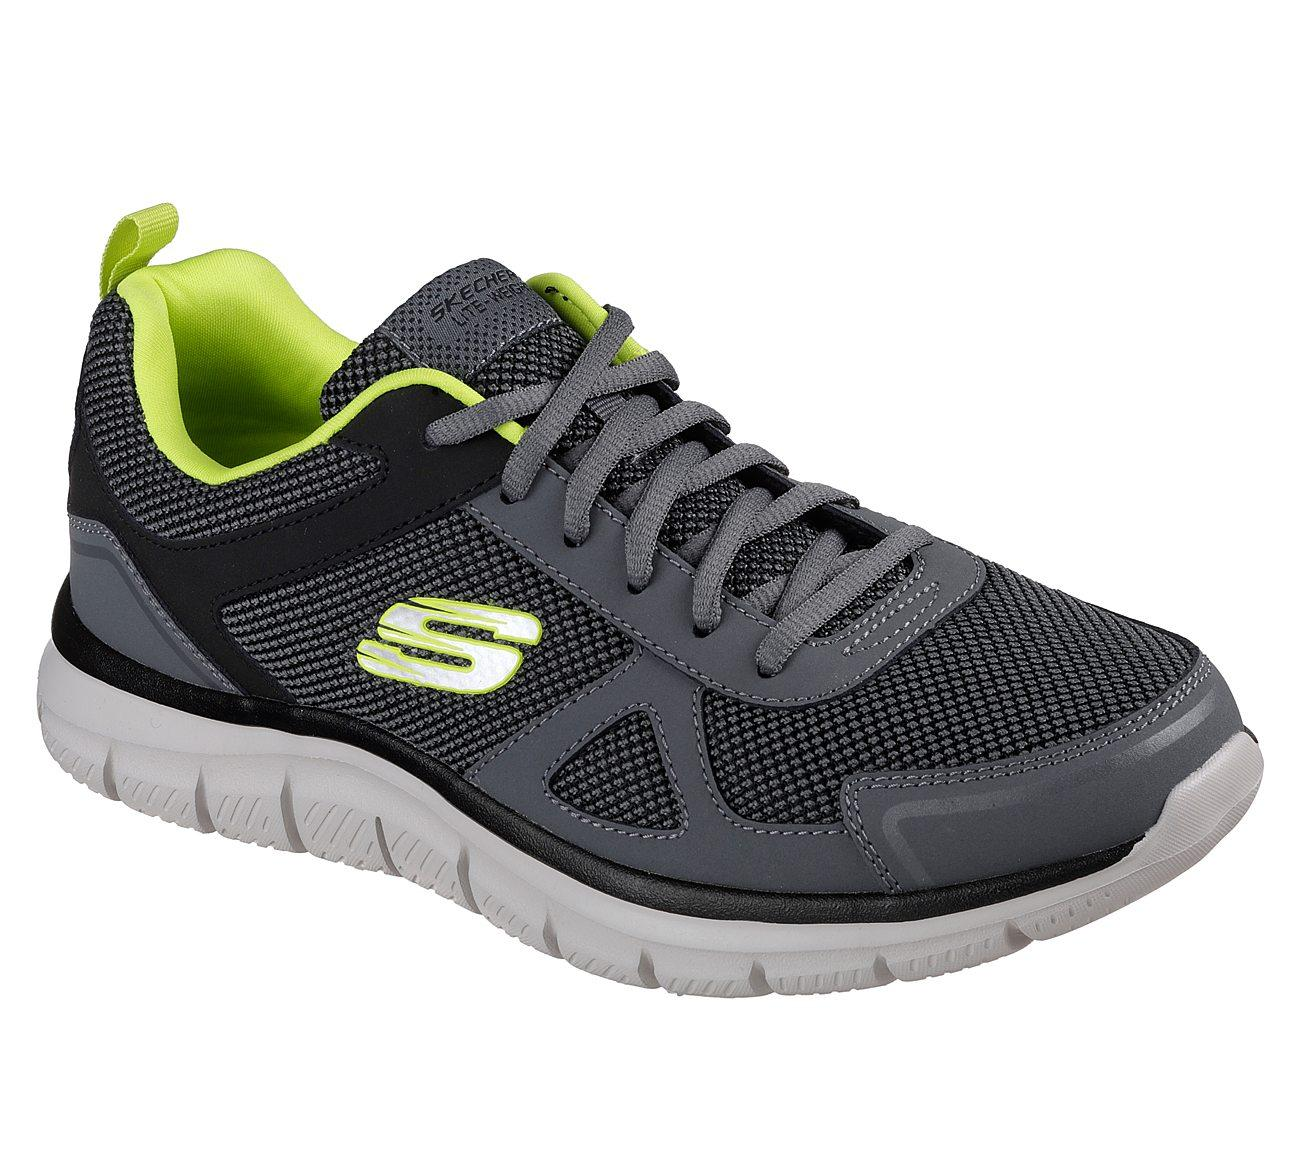 b5372593a2 Buy Skechers Online | Mobile Accessories | Lazada